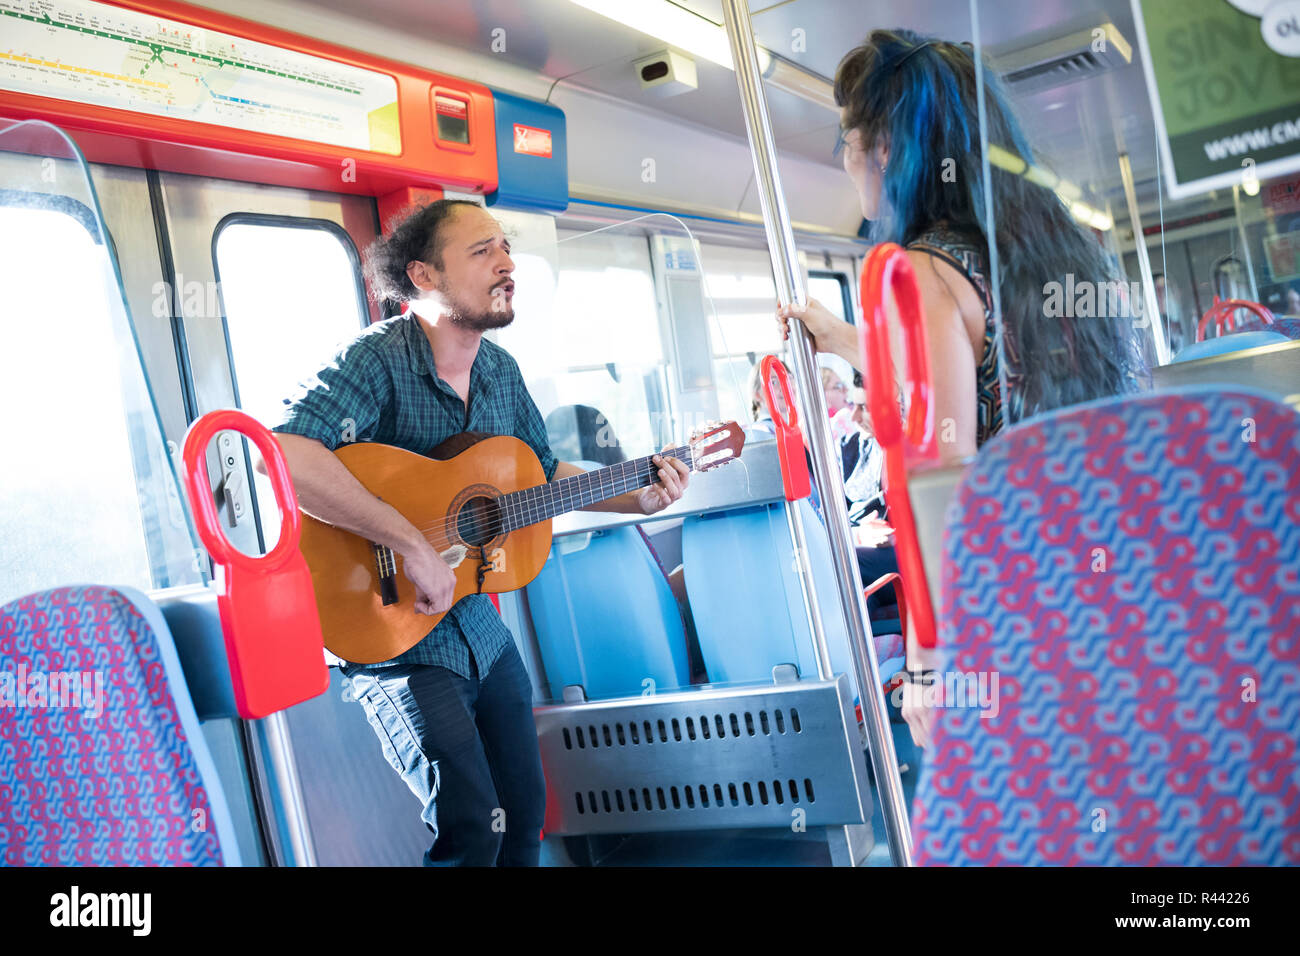 Man and woman performing a duet on a train headed for Lisbon, Portugal. - Stock Image